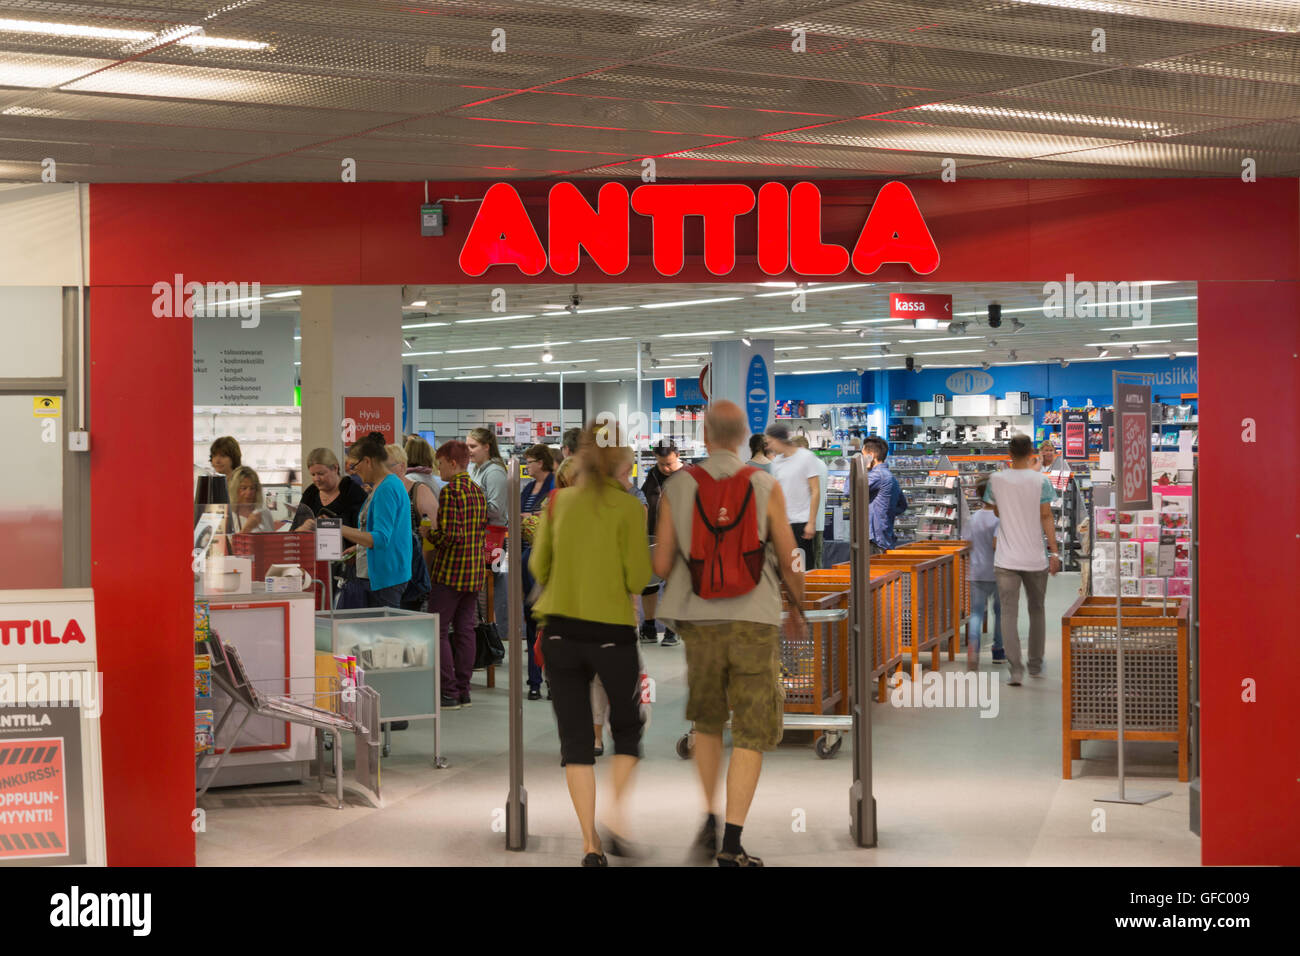 Anttila Lahti Warehouse Stock Photo